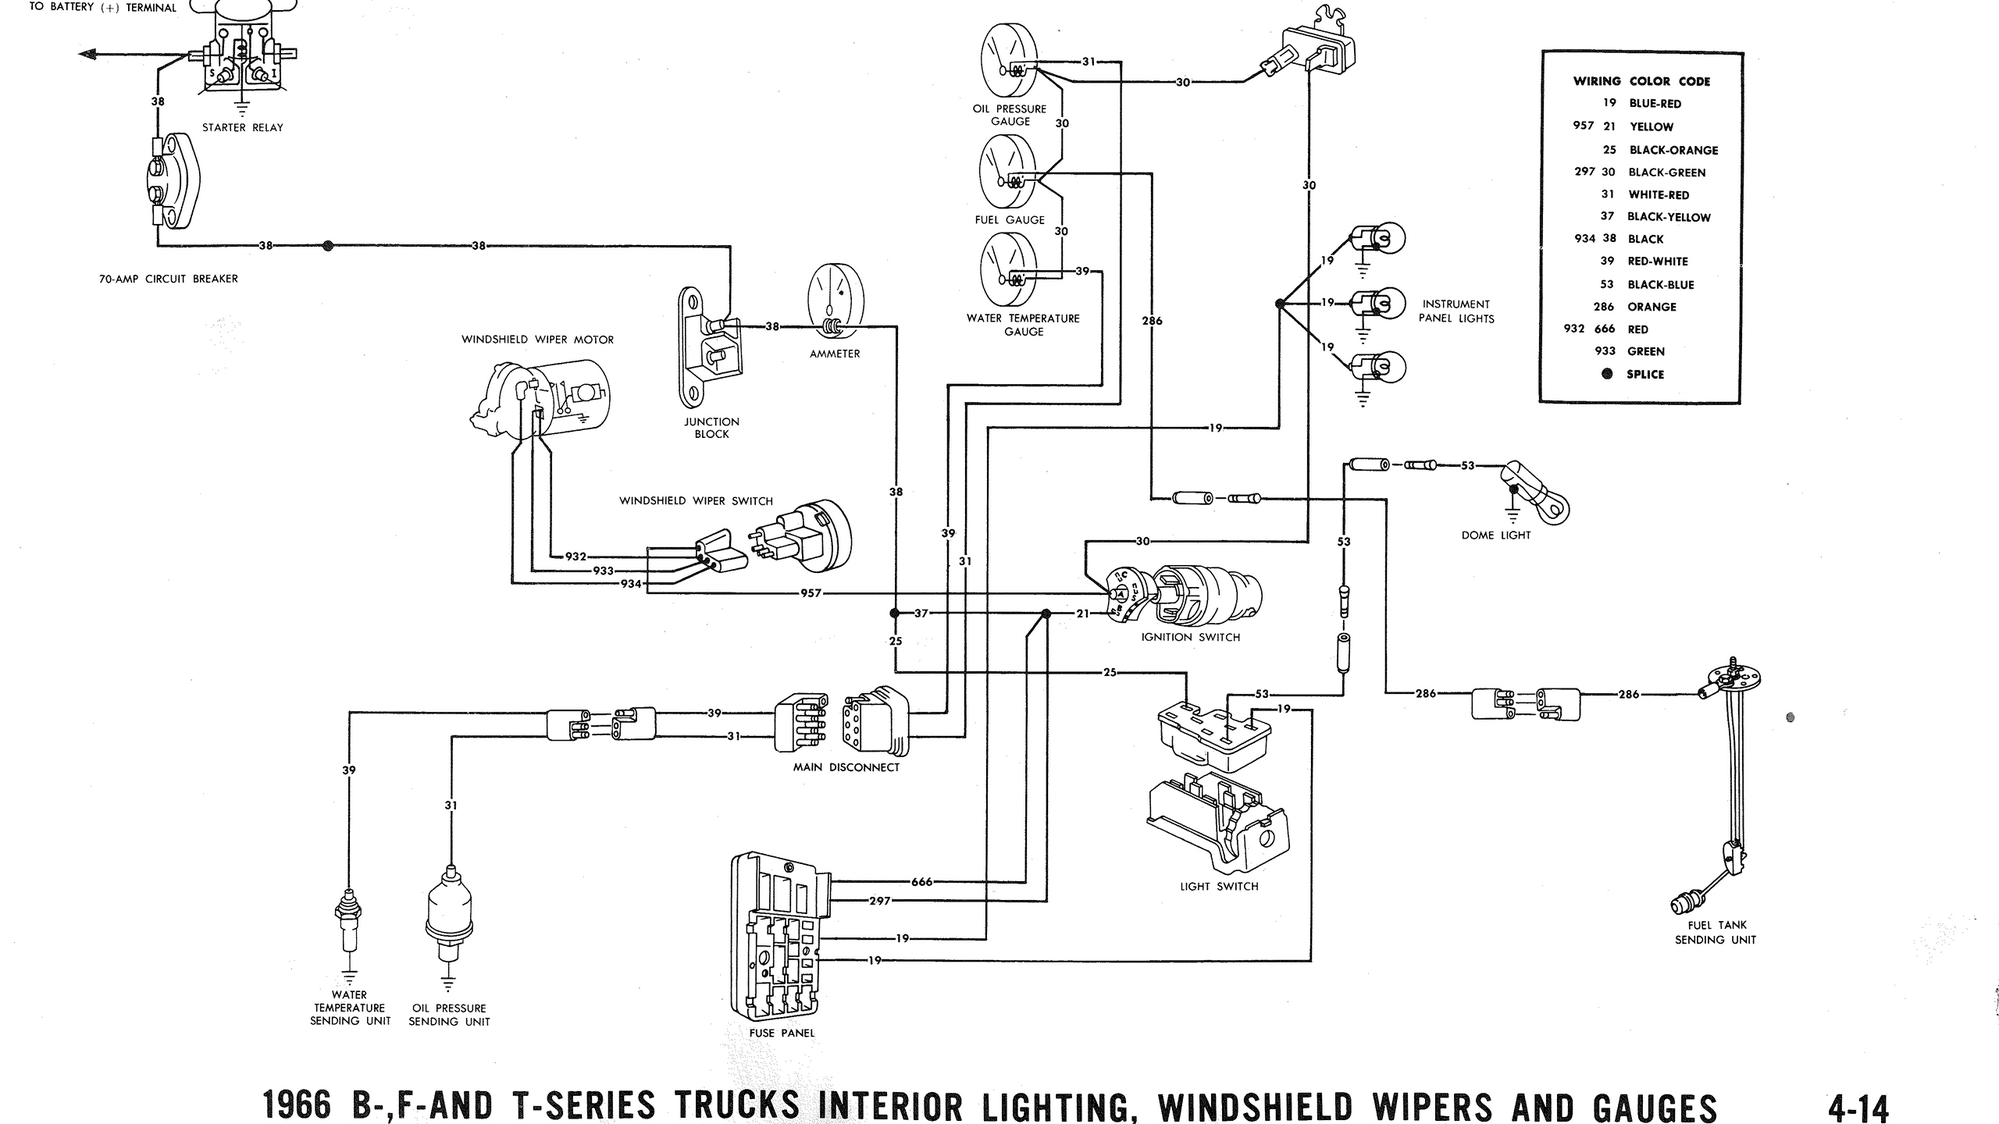 A Ford Ignition Switch Wiring Diagram For